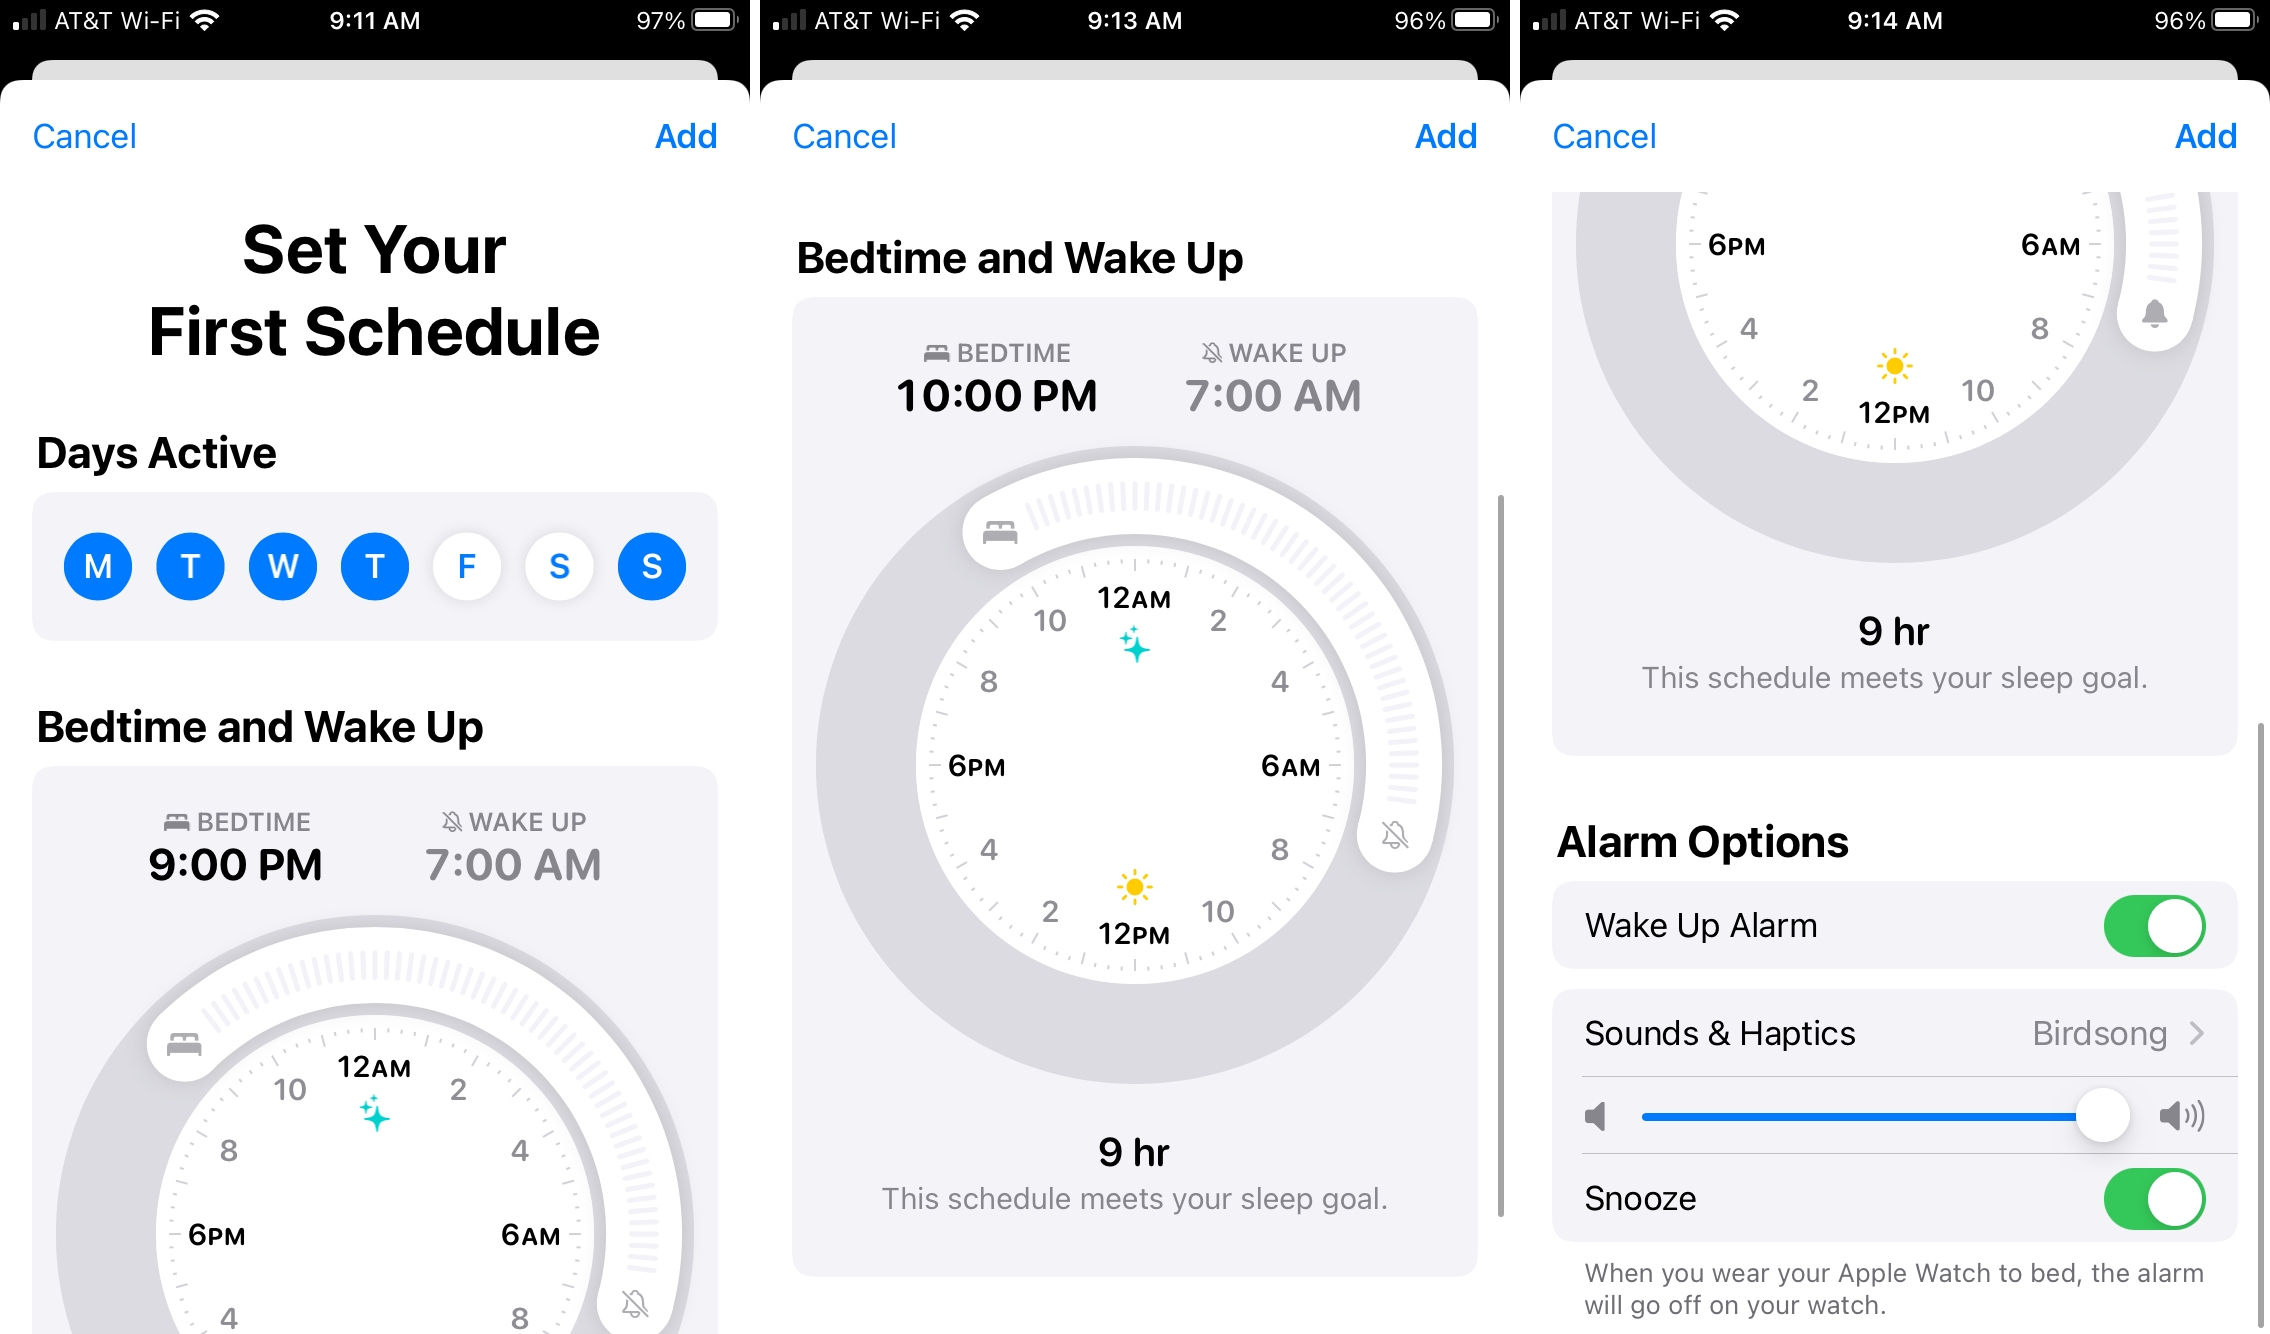 Set Your First Schedule for Sleep